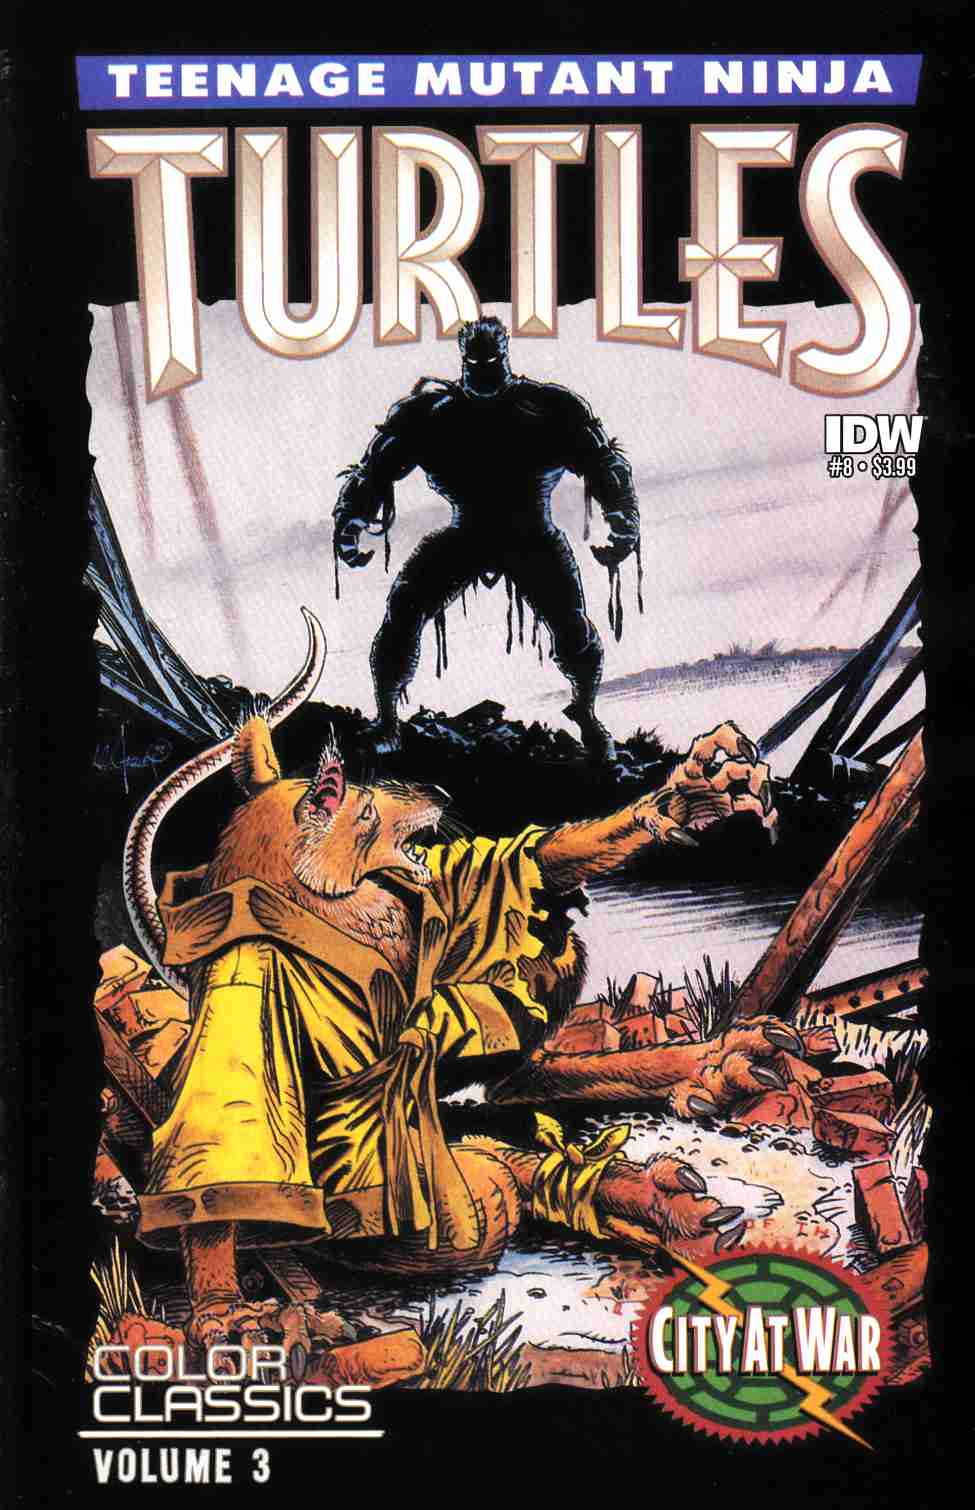 Teenage Mutant Ninja Turtles Color Classics Series 3 #8 [IDW Comic] LARGE